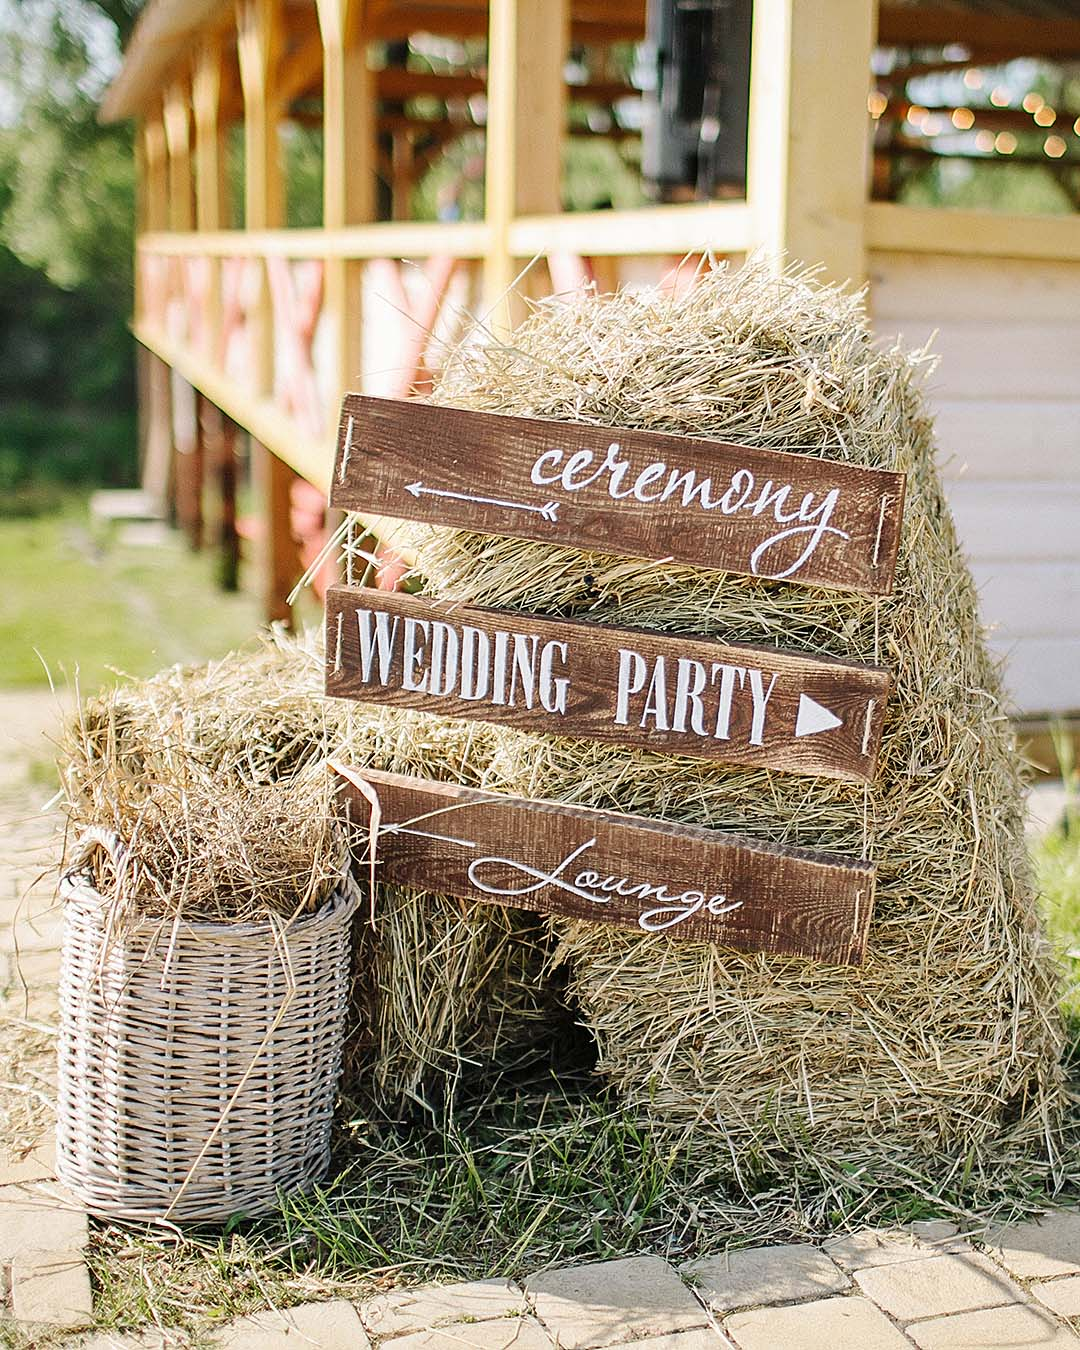 rustic wedding ideas barn wedding wedding signs decor